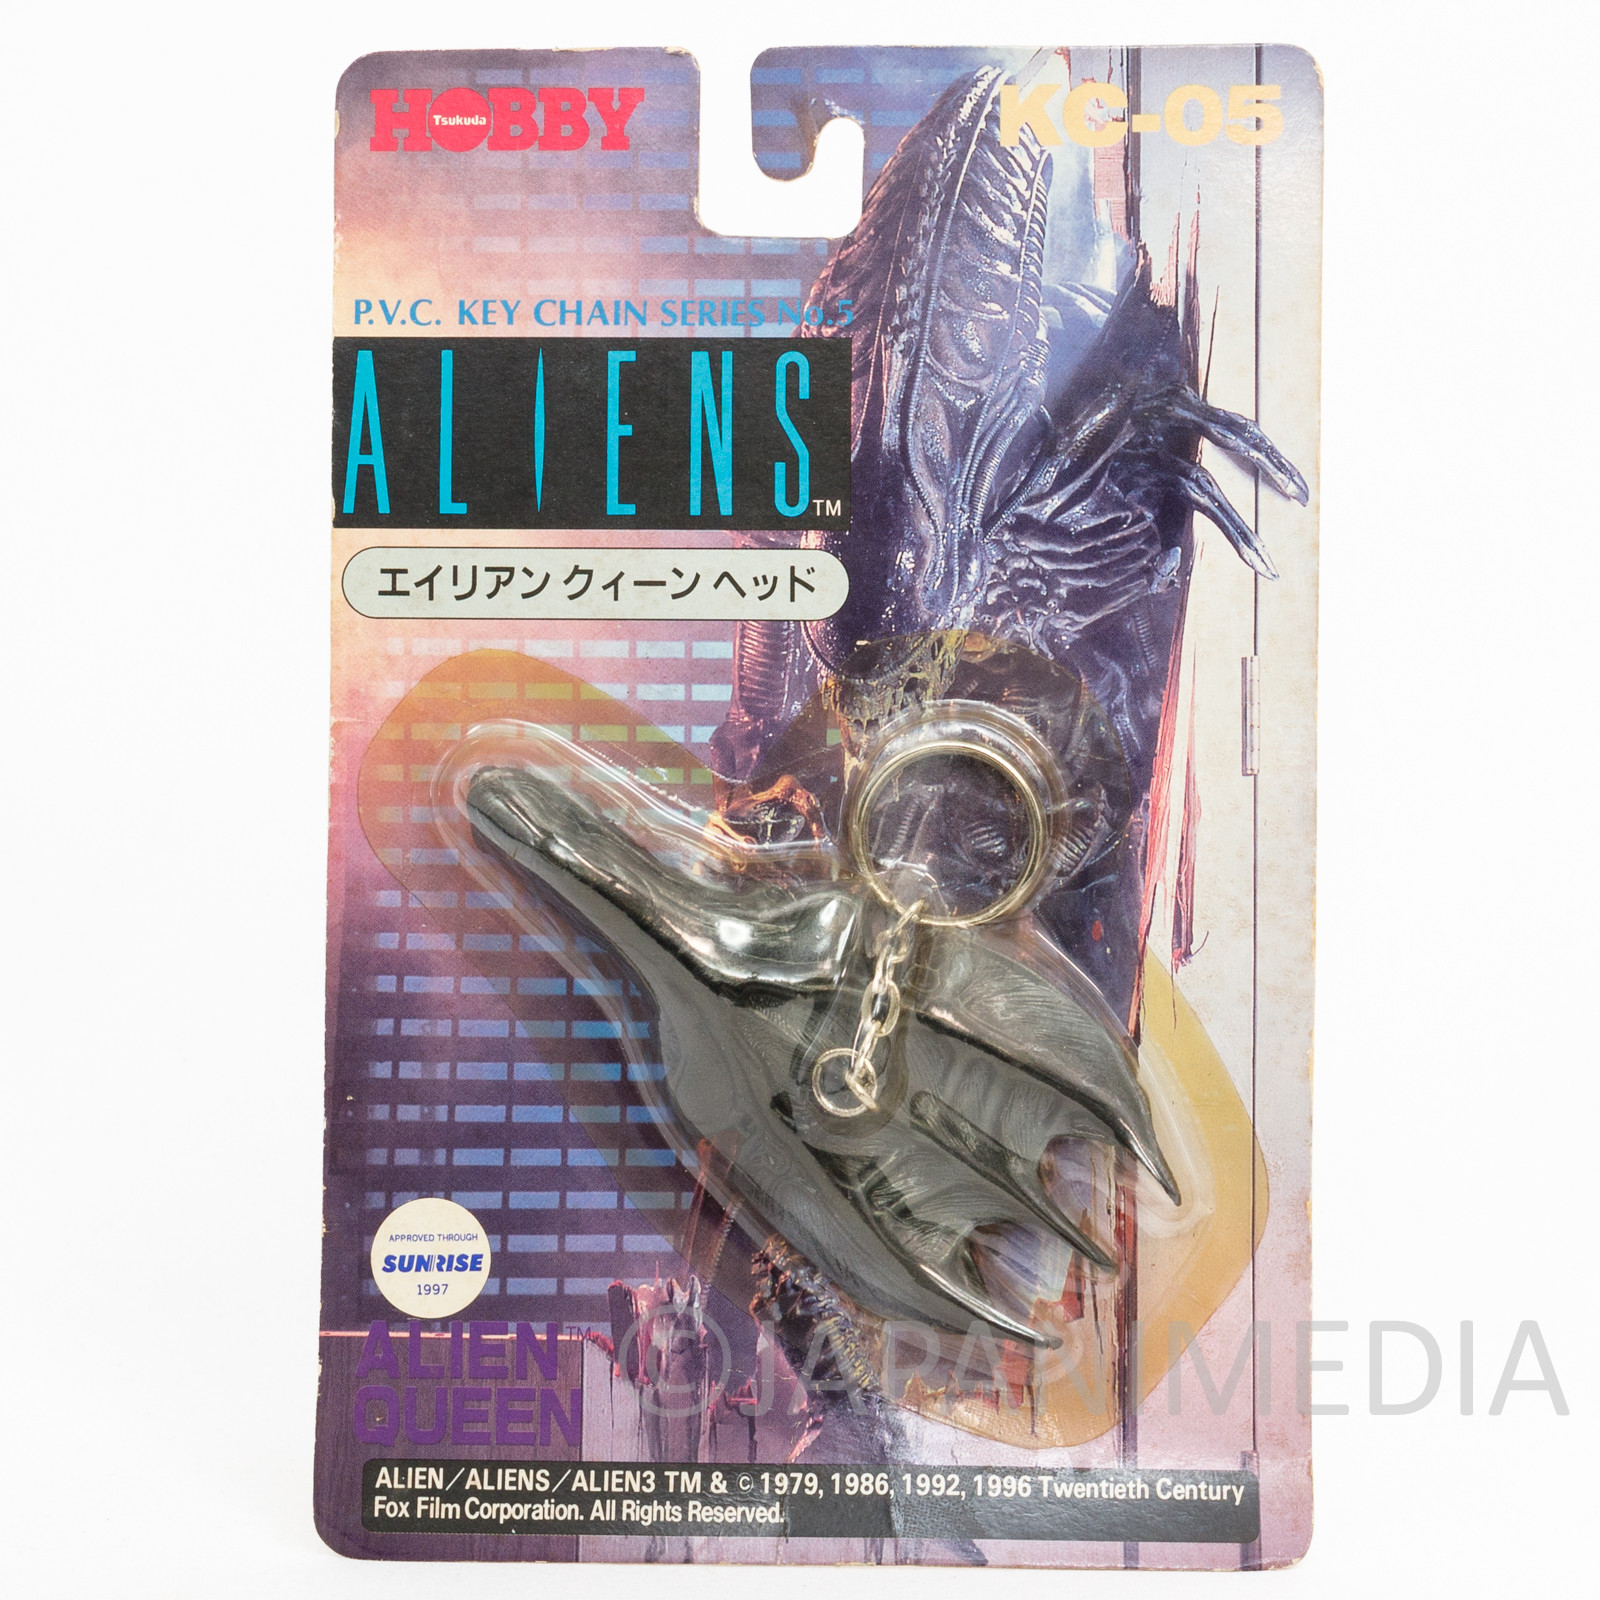 ALIENS Alien Queen Head Figure Key Chain Tsukuda Hobby KC-04